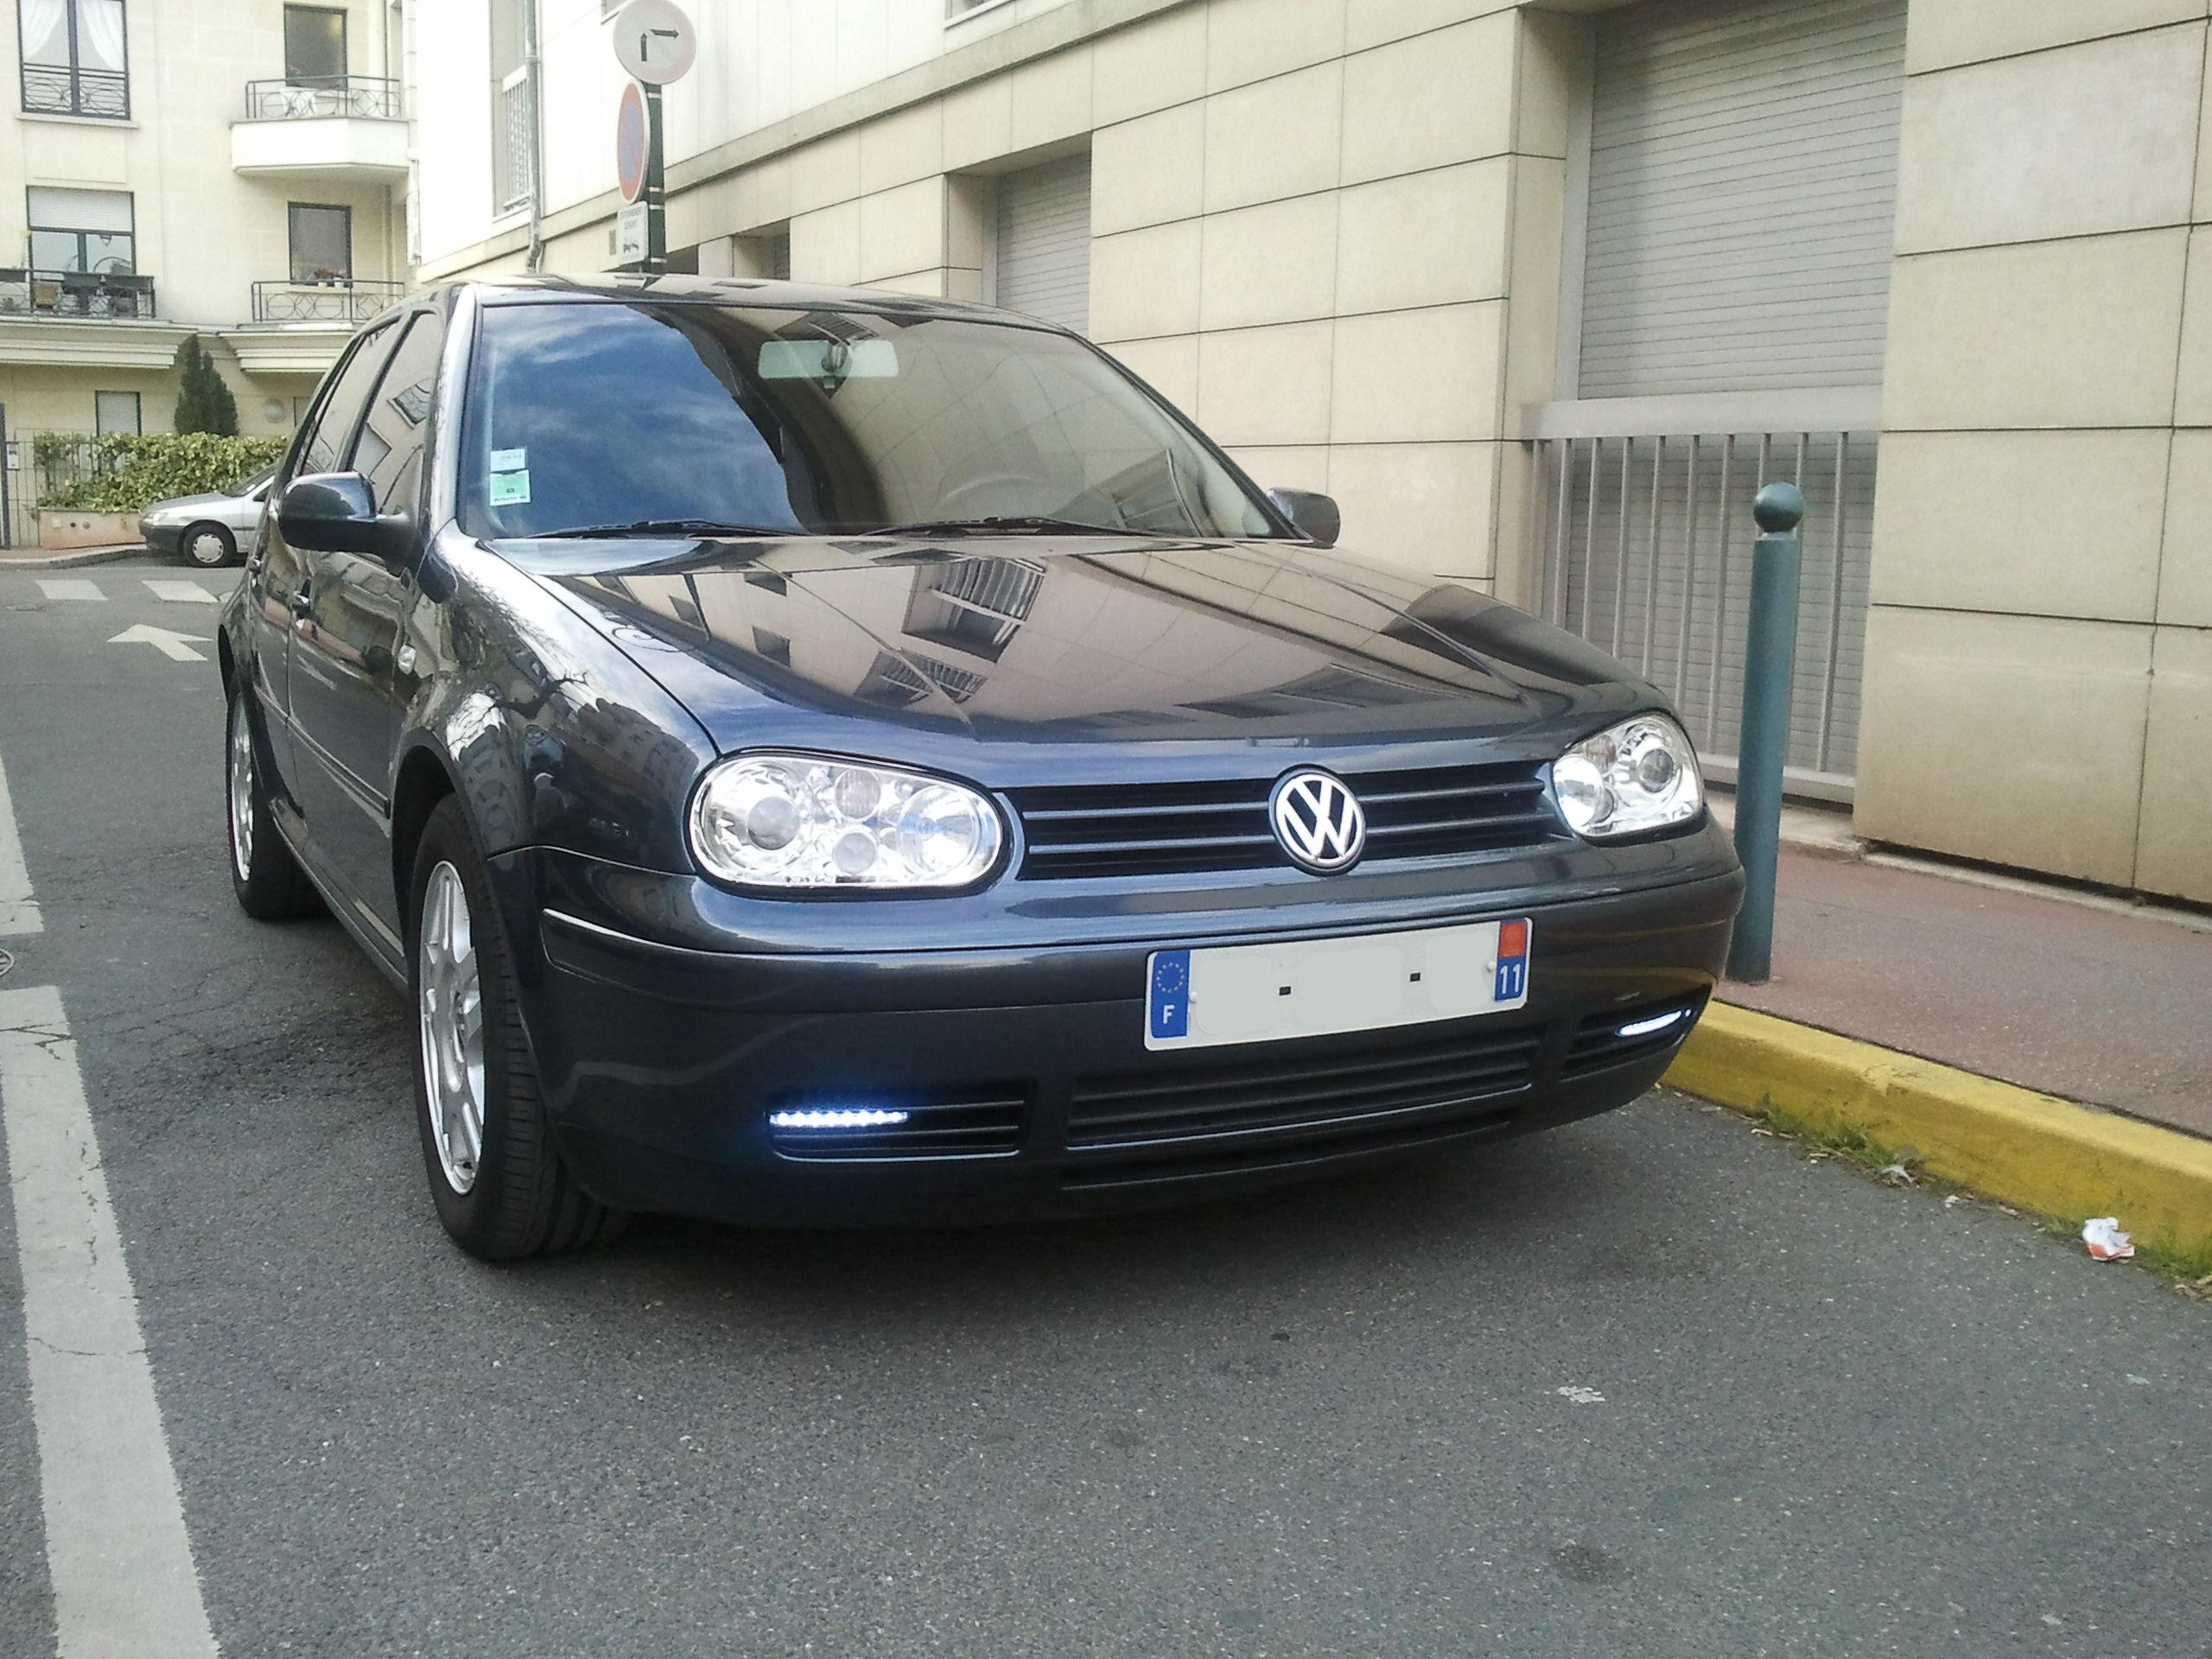 vw golf iv tdi 110 confort 2001 garage des golf iv tdi 110 forum volkswagen golf iv. Black Bedroom Furniture Sets. Home Design Ideas